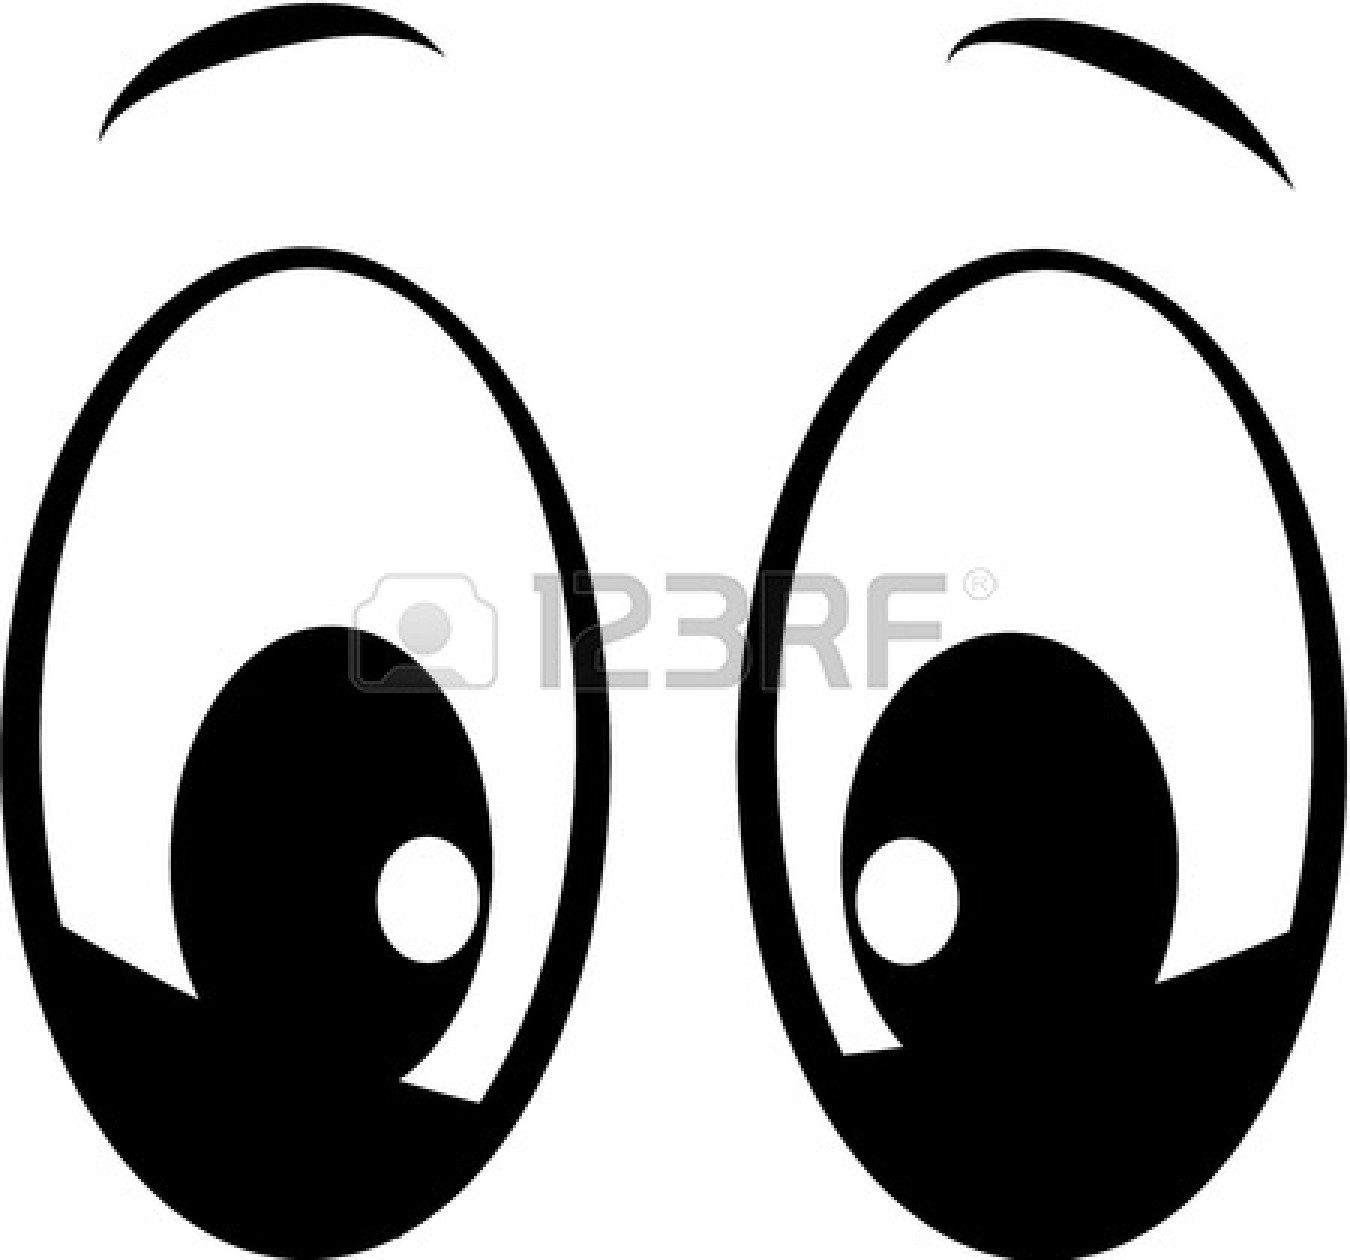 eyes looking down clipart - photo #14